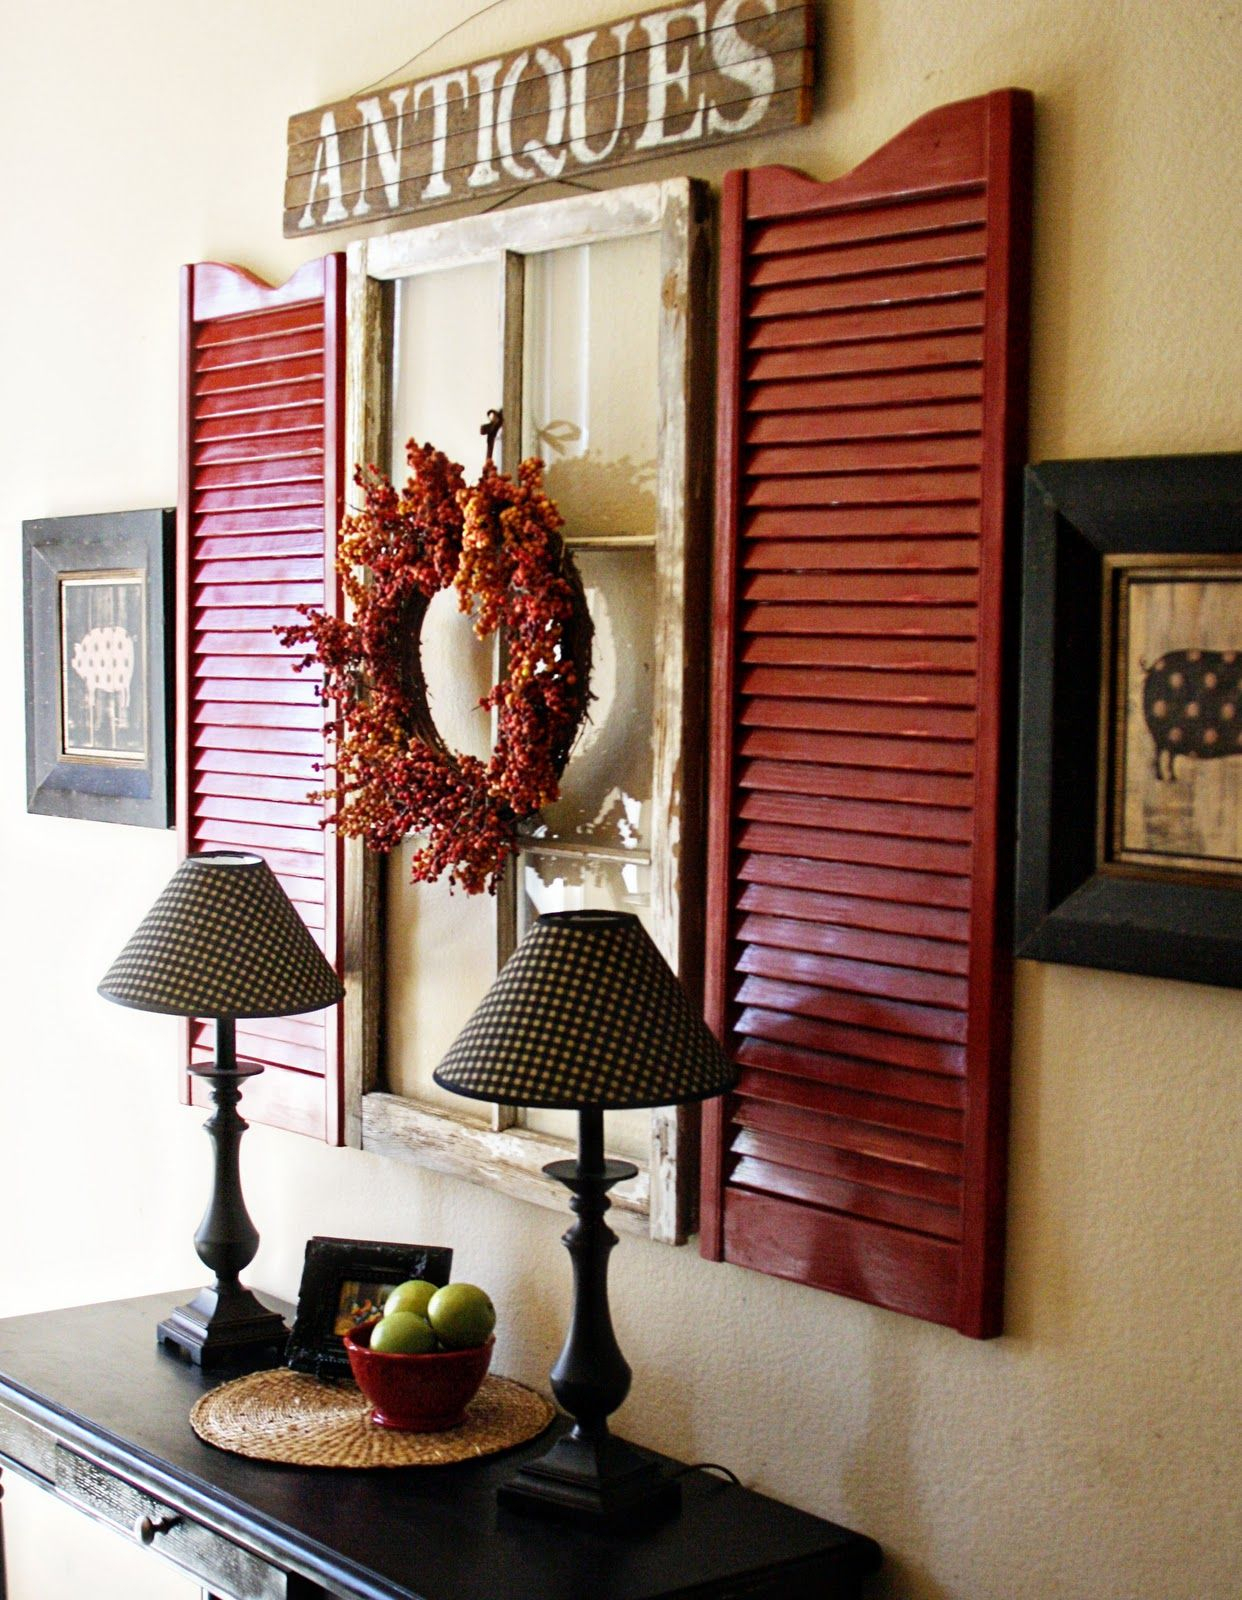 10 Great Ideas For Decorating Ideas For Shutters | Design With Regard To Shutter Window Hanging Wall Decor (View 2 of 30)